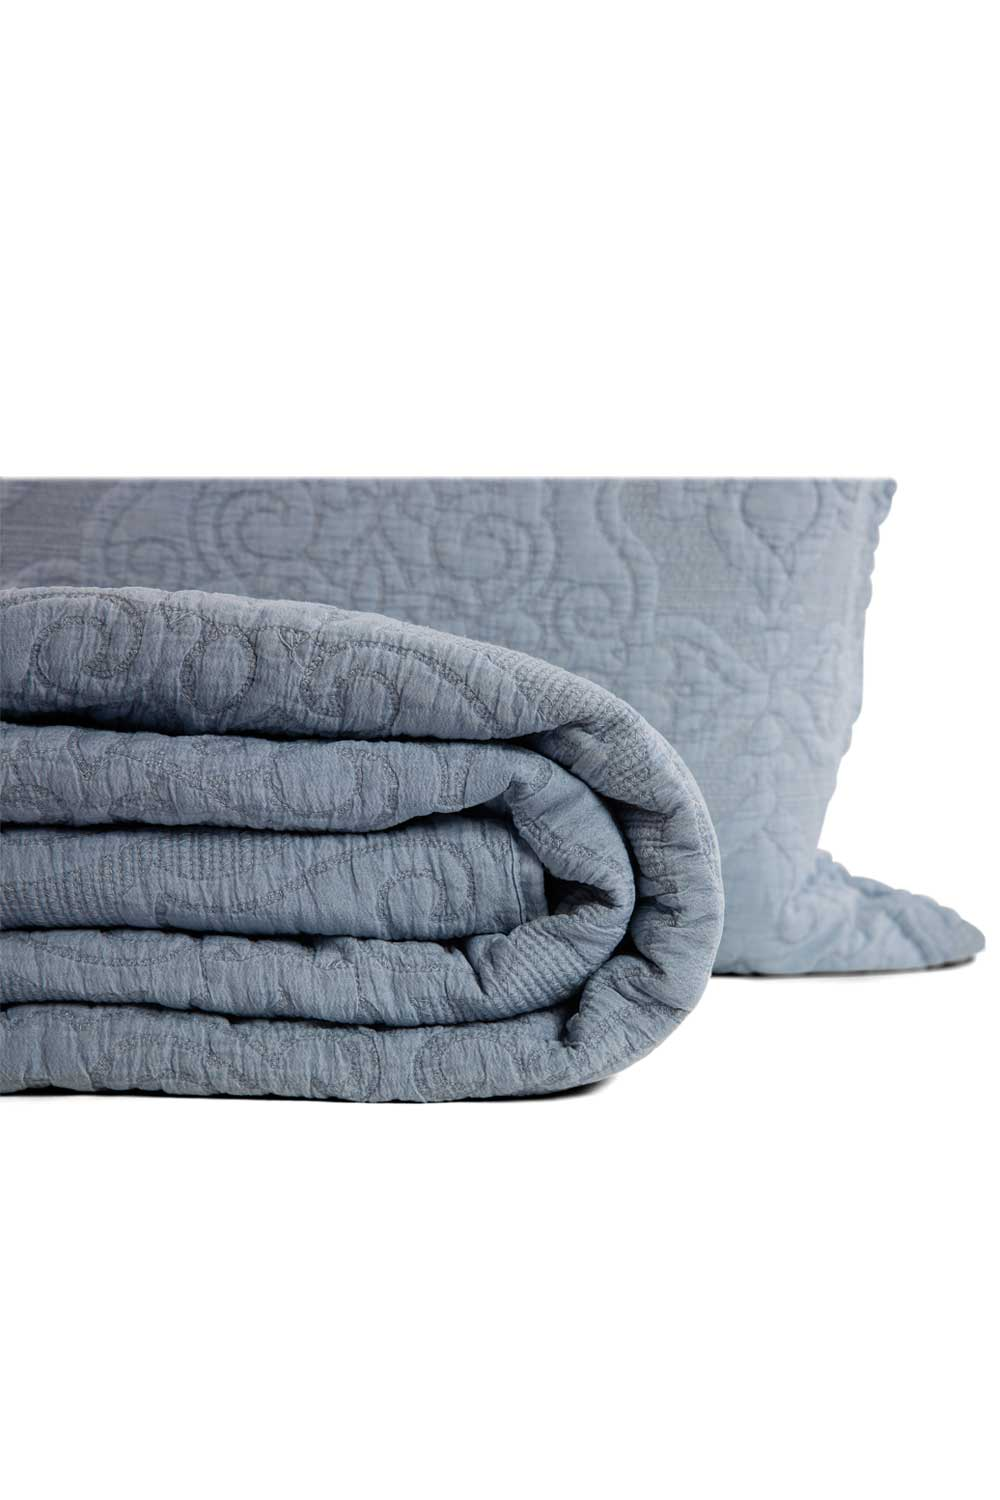 MIZALLE Dark Blue Double Coverlet (260X270) (1)